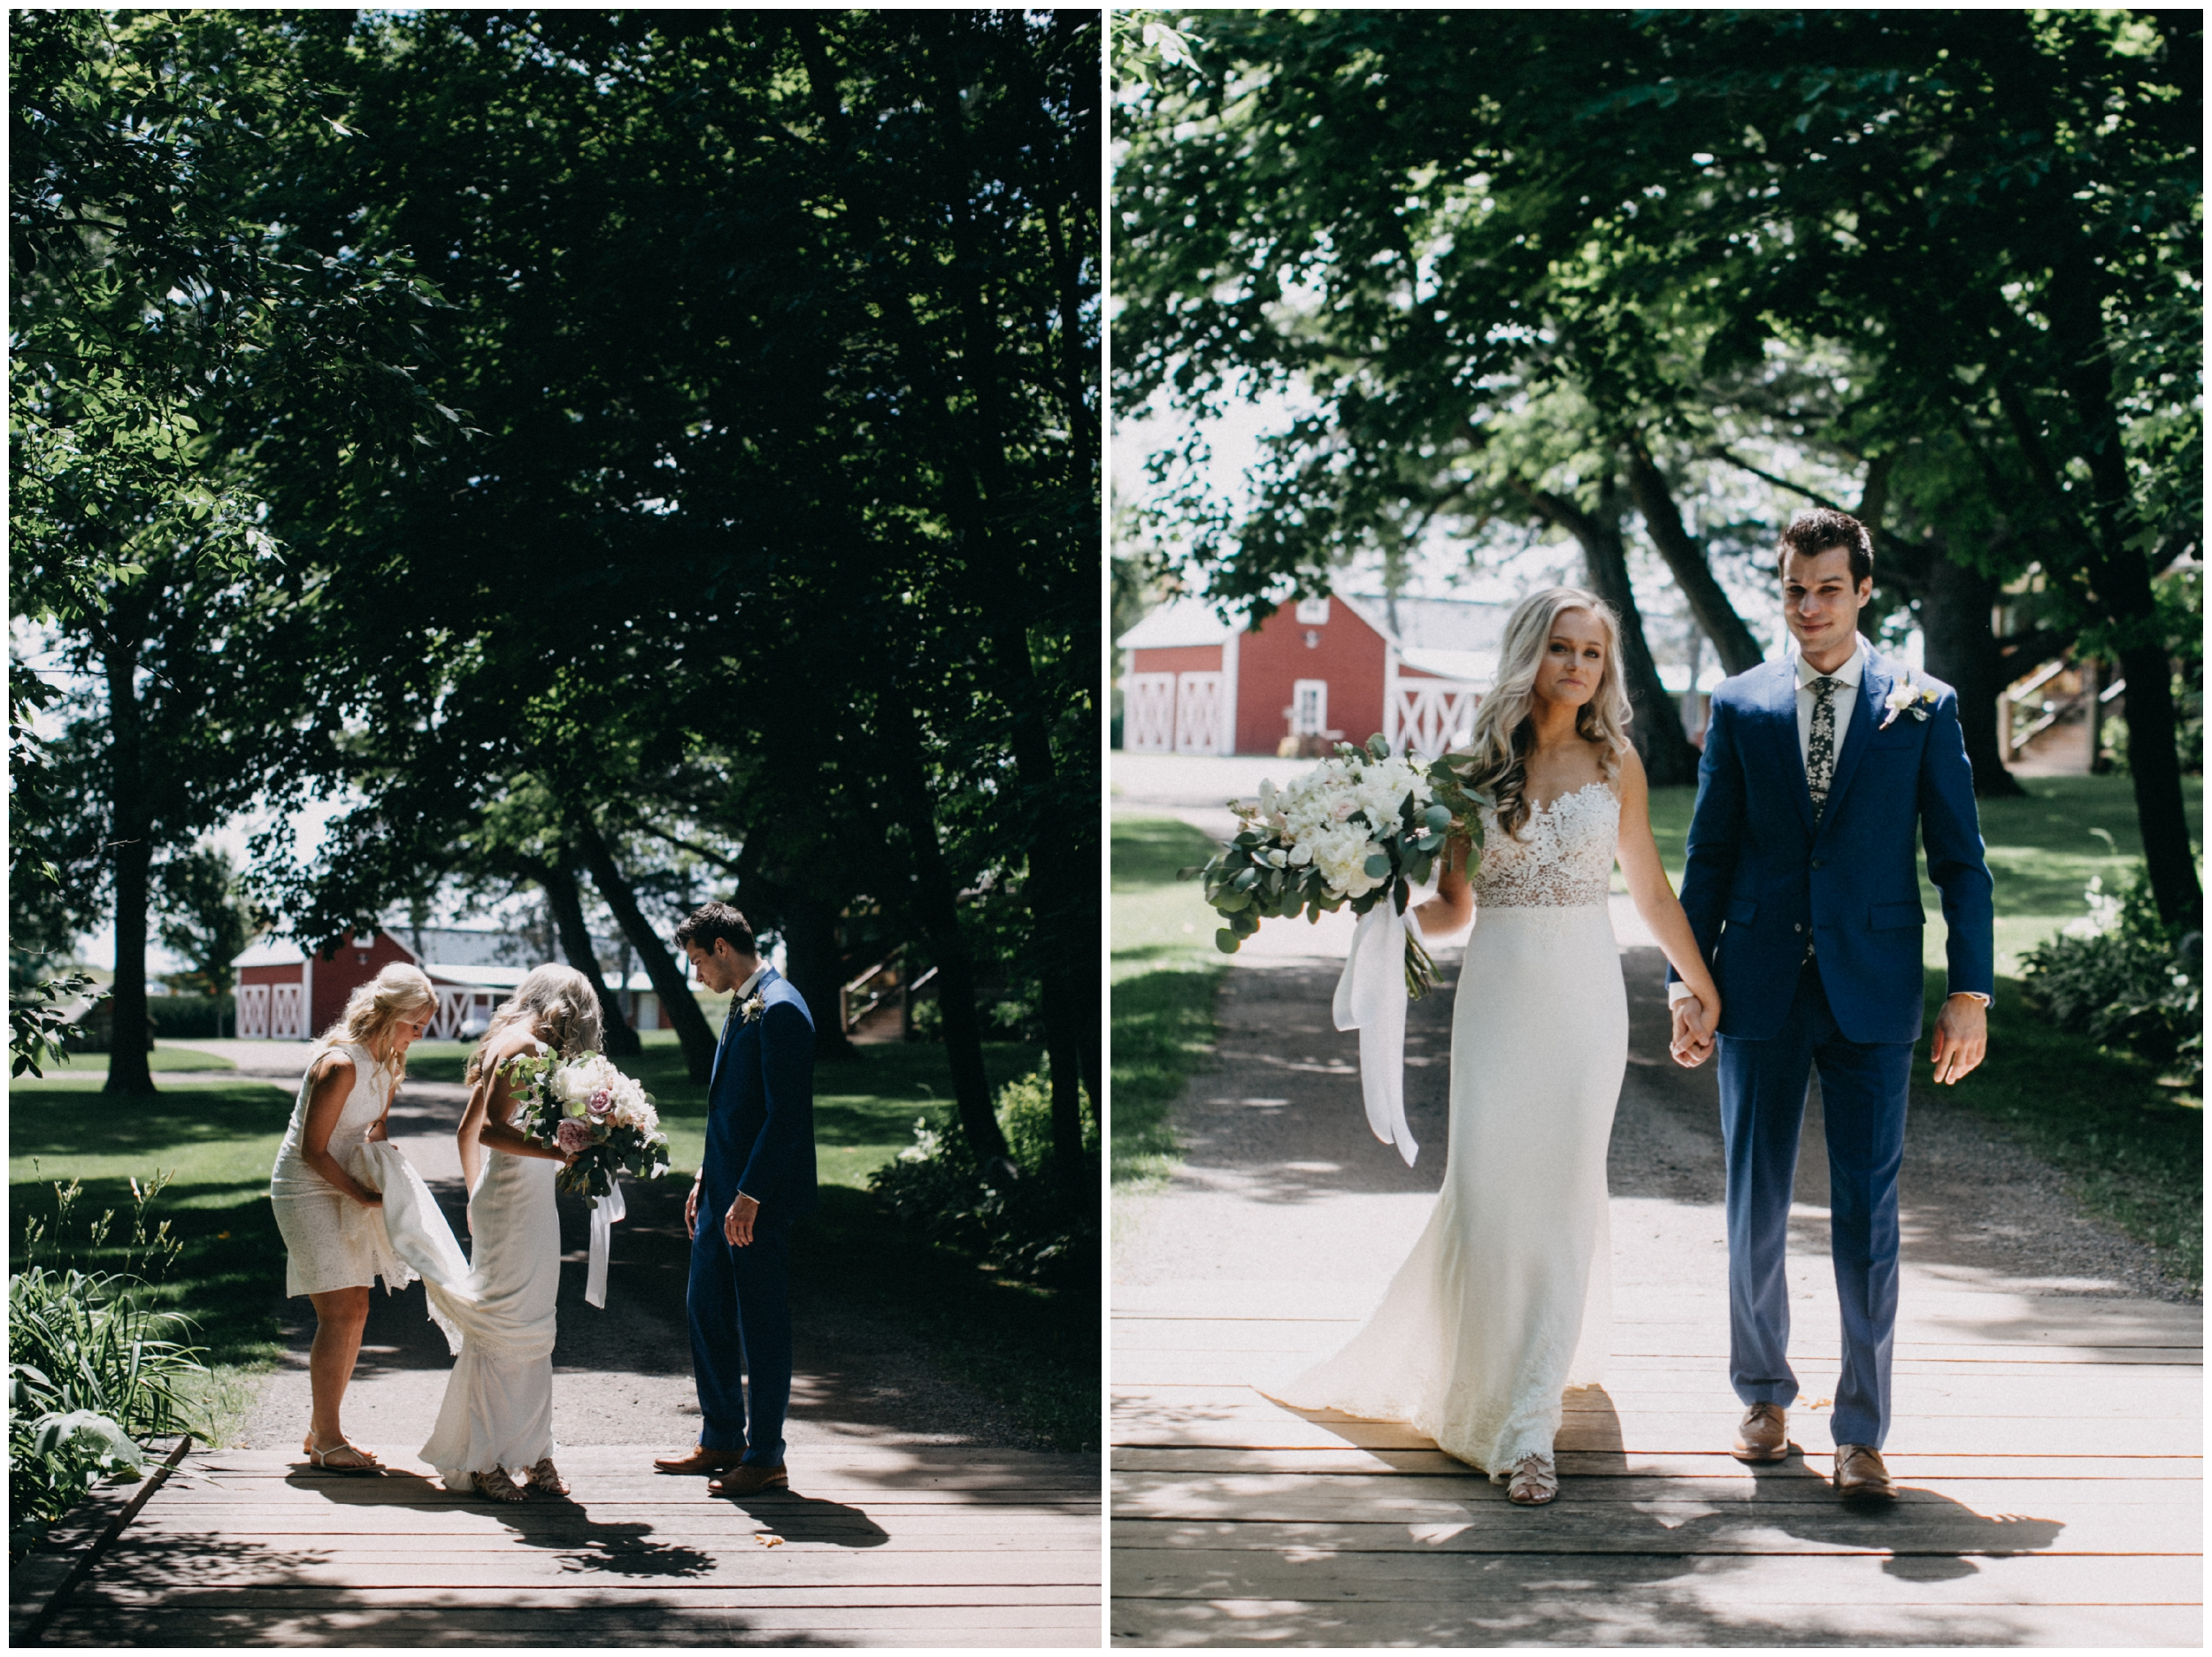 Sunny July wedding at Creekside Farm in Rush City, MN